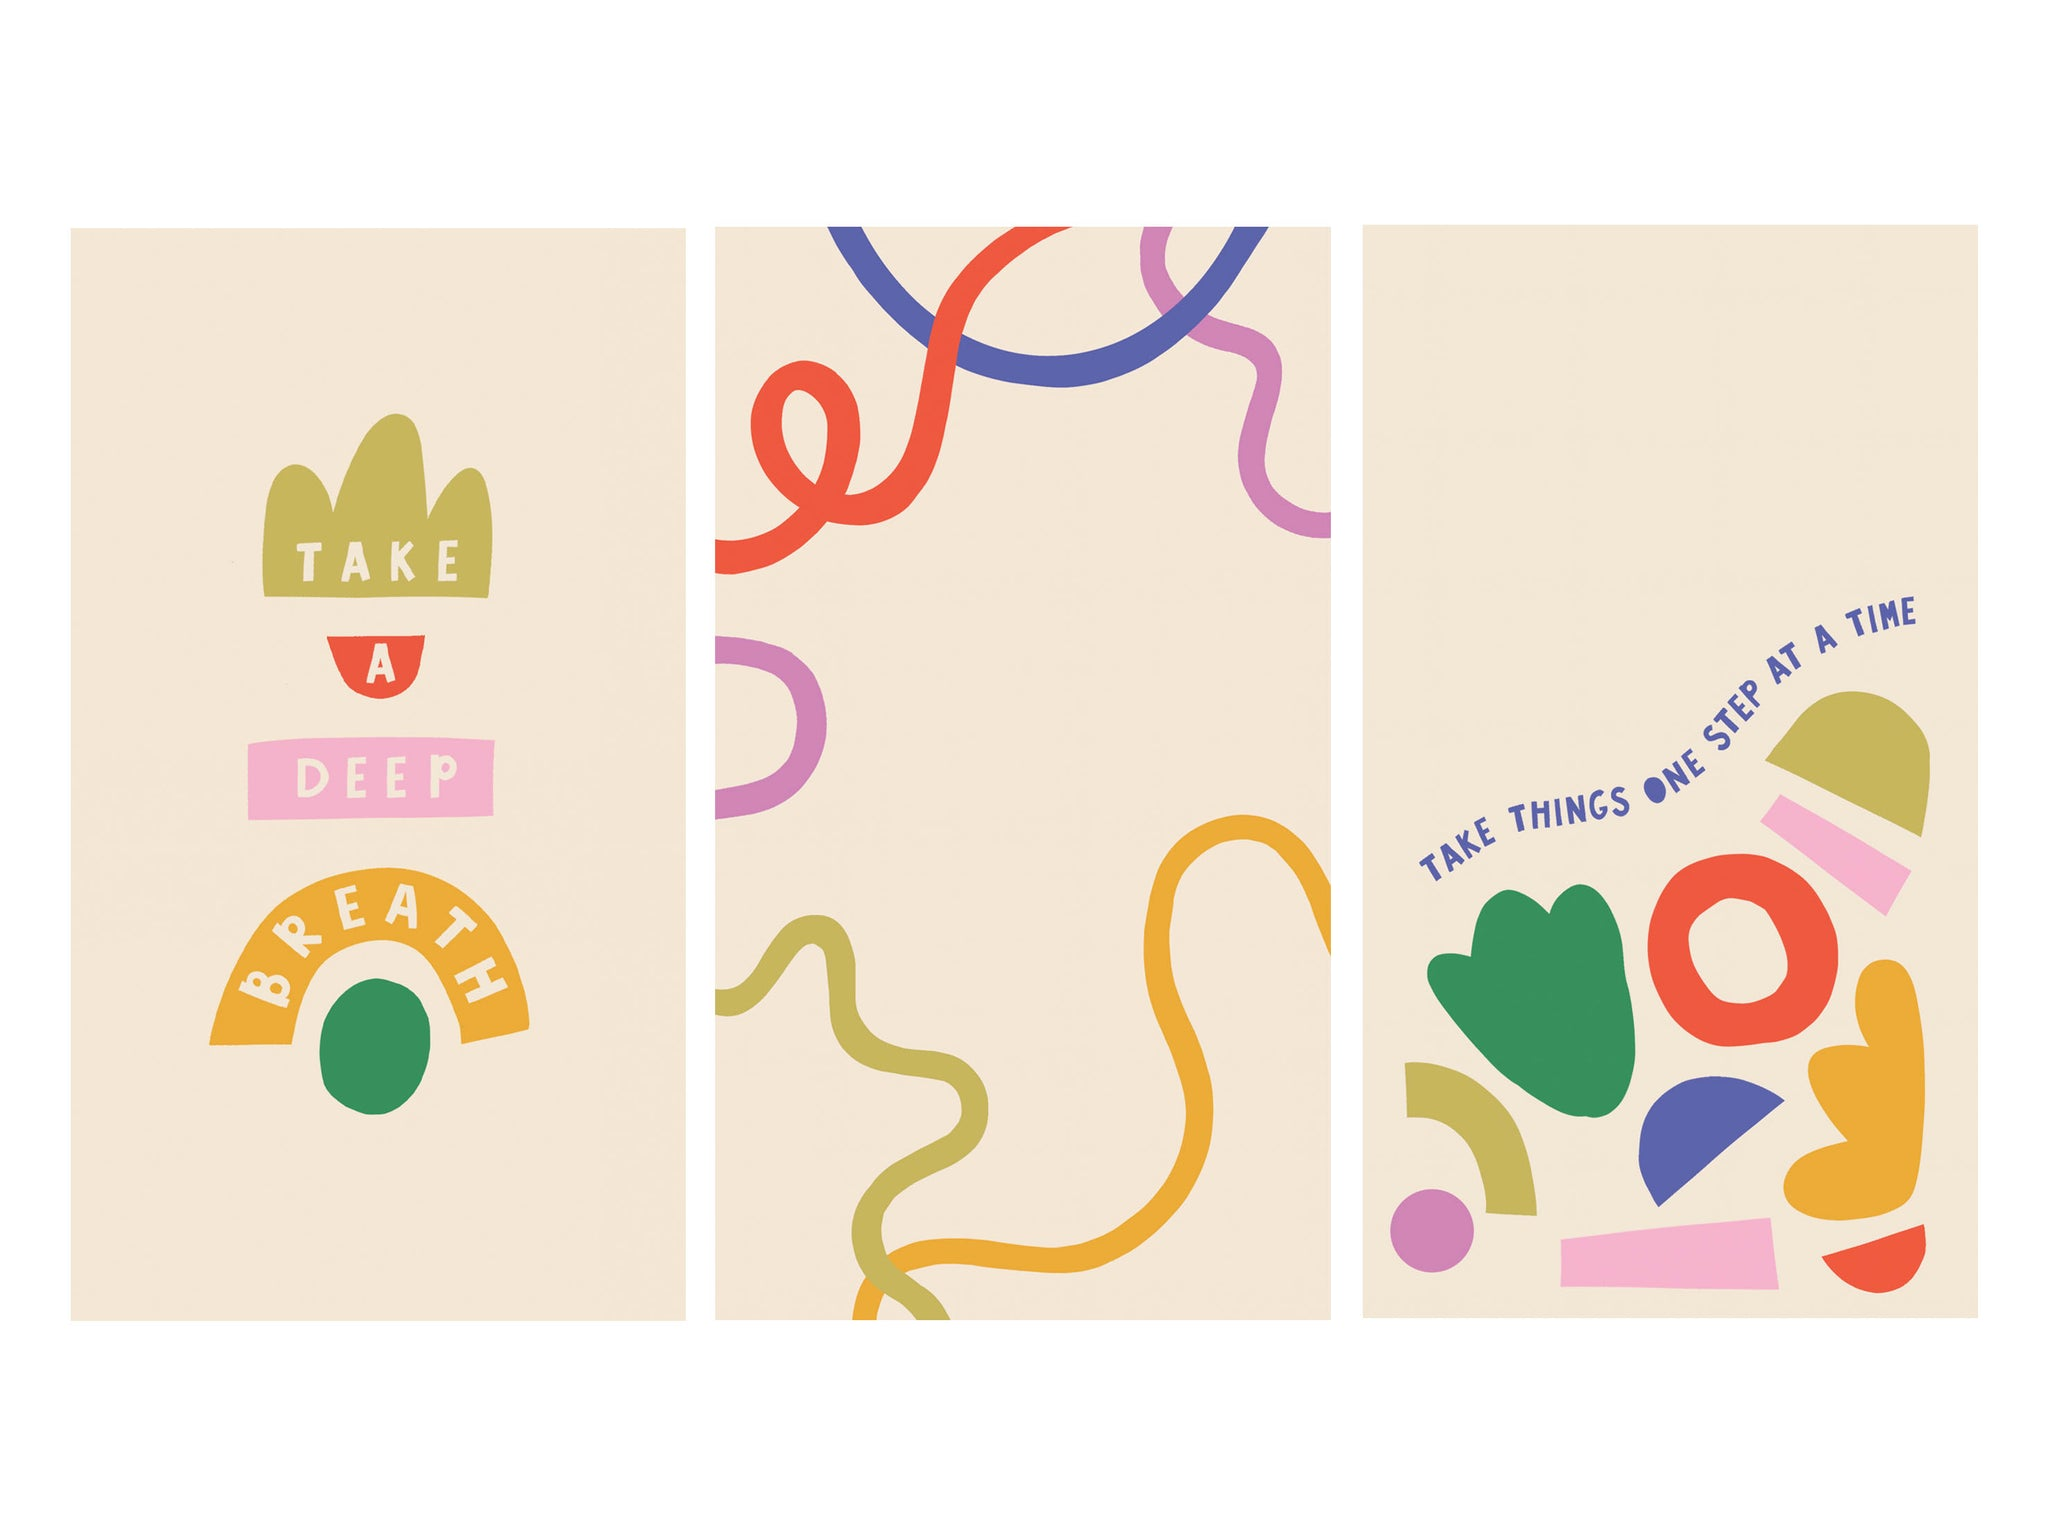 Three colourful free HD phone wallpaper downloads - 'Take a Deep Breath', colourful squiggles and 'Take one step at a time' | Raspberry Blossom